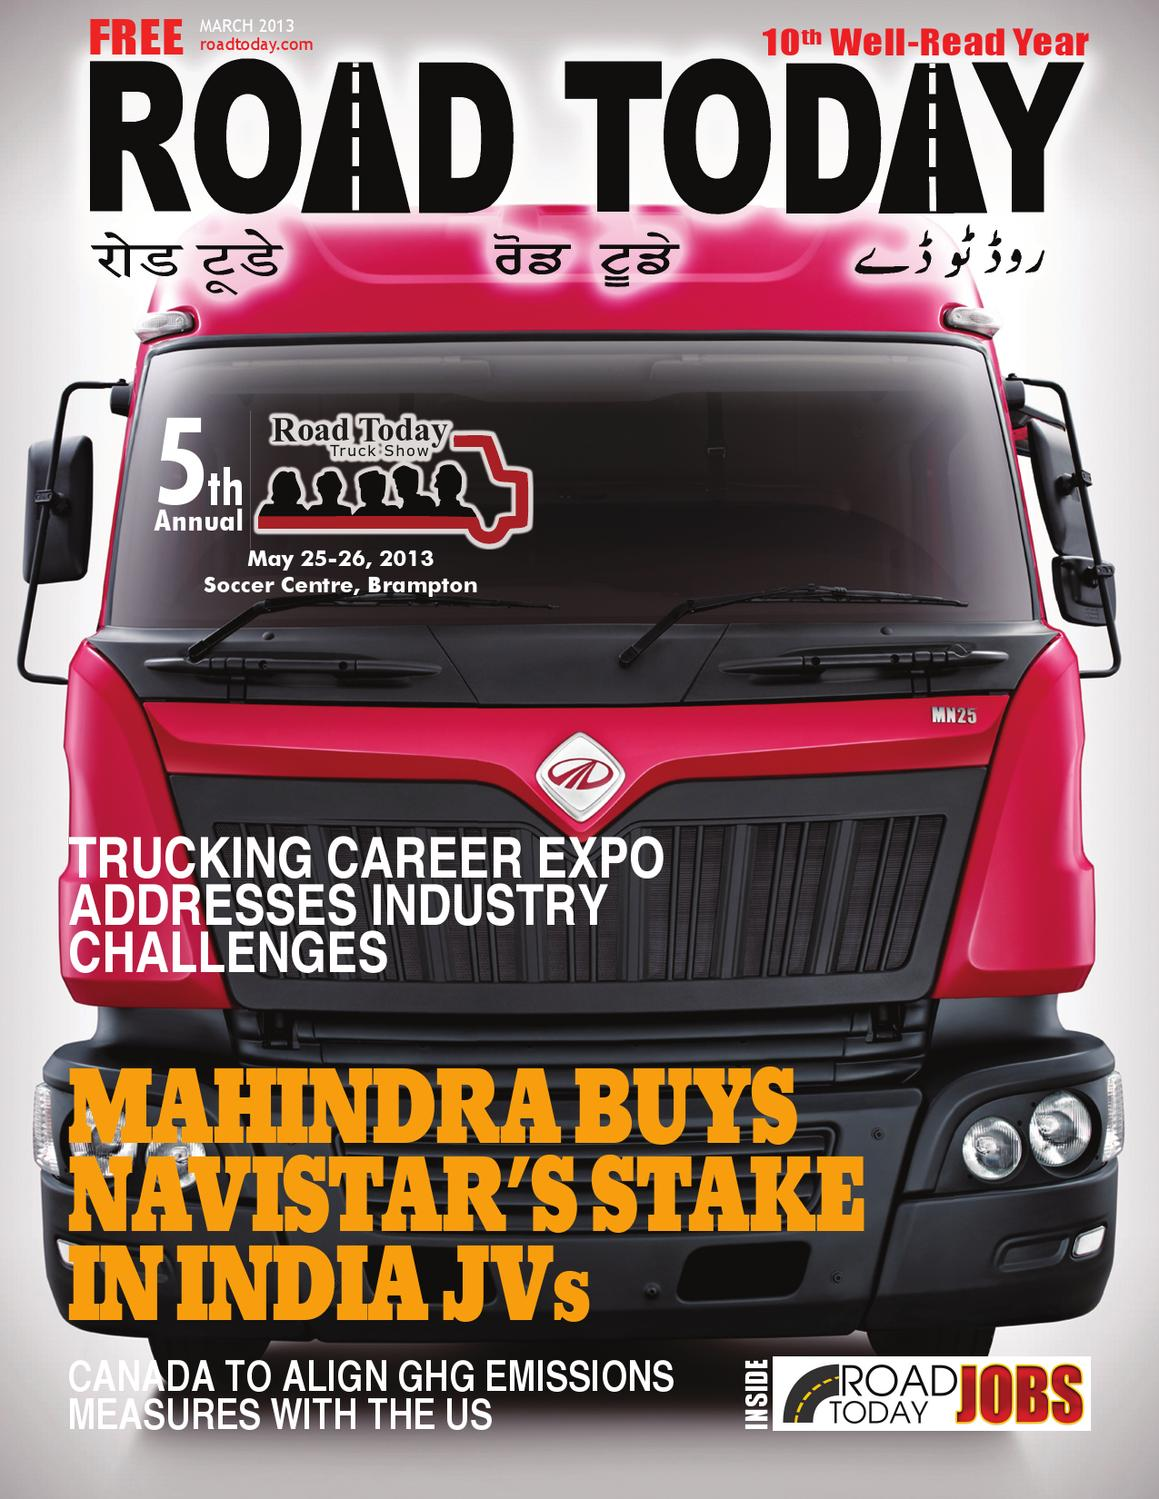 Road Today MAR 2013 by Road Today - issuu